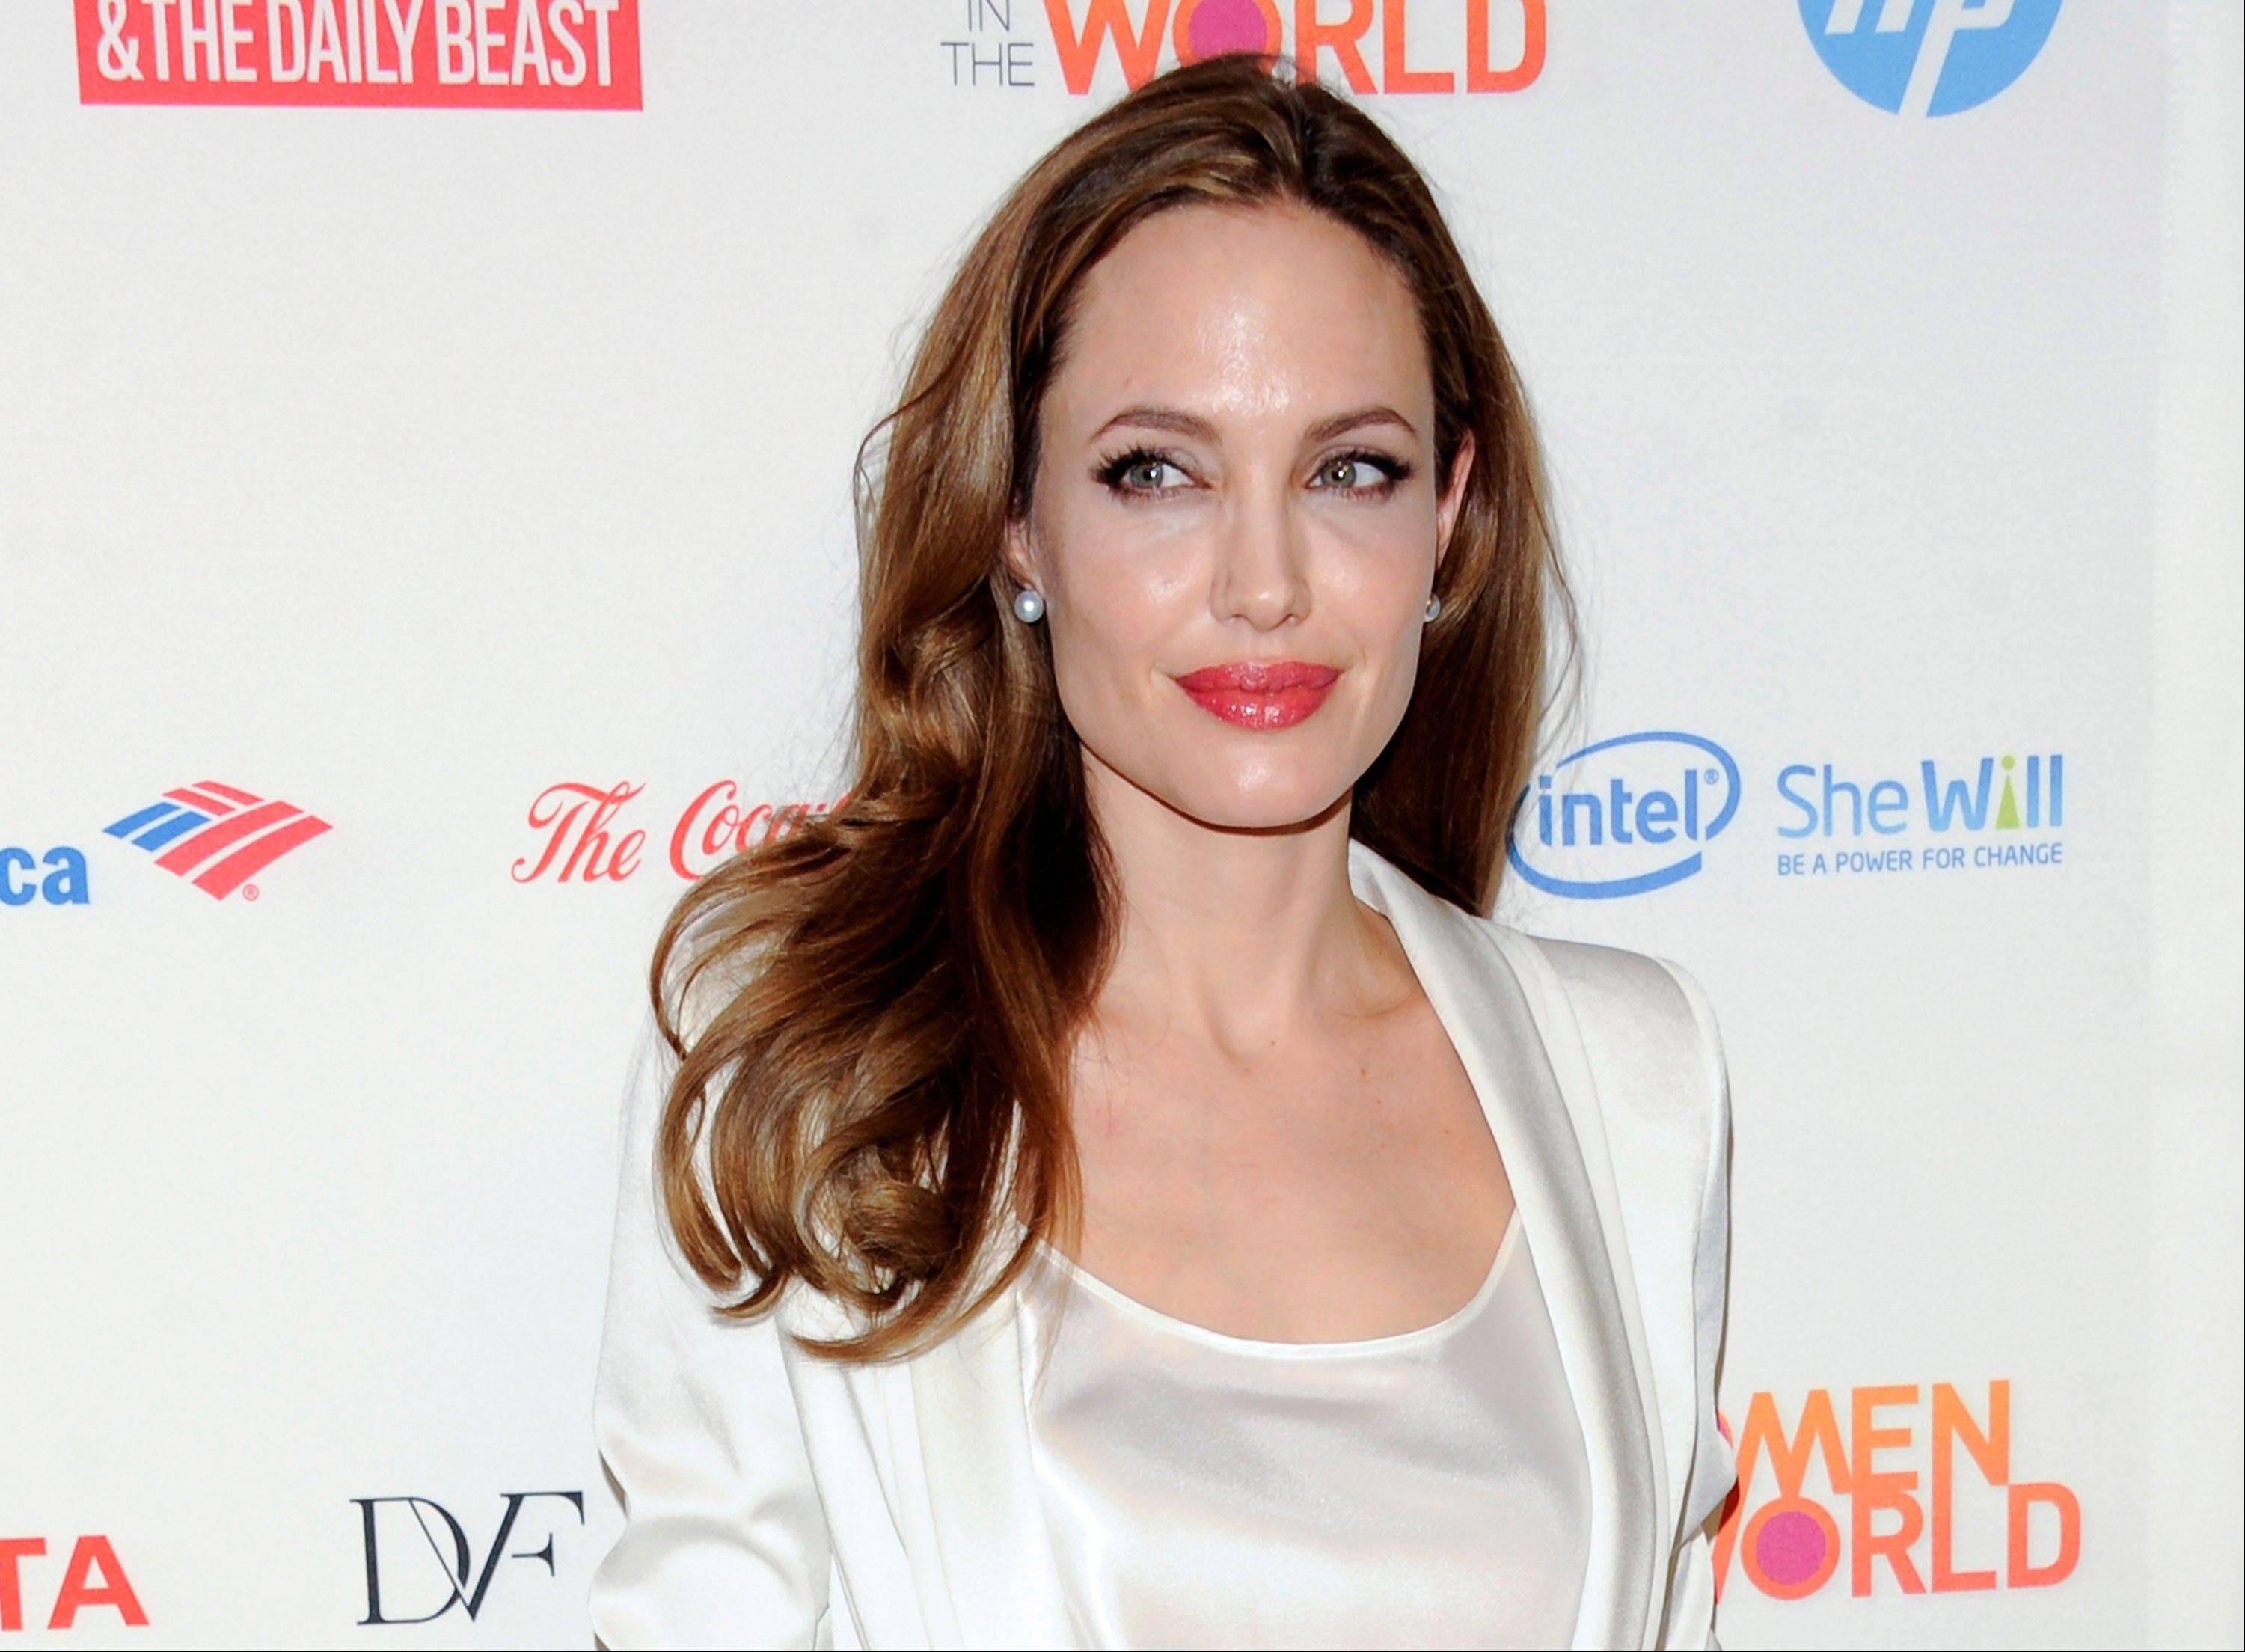 Actress Angelina Jolie authored an op-ed for Tuesday's New York Times where she writes that in April she finished three months of surgical procedures to remove both breasts as a preventive measure. She says she's kept the process private but is writing about it now with hopes she can help other women.